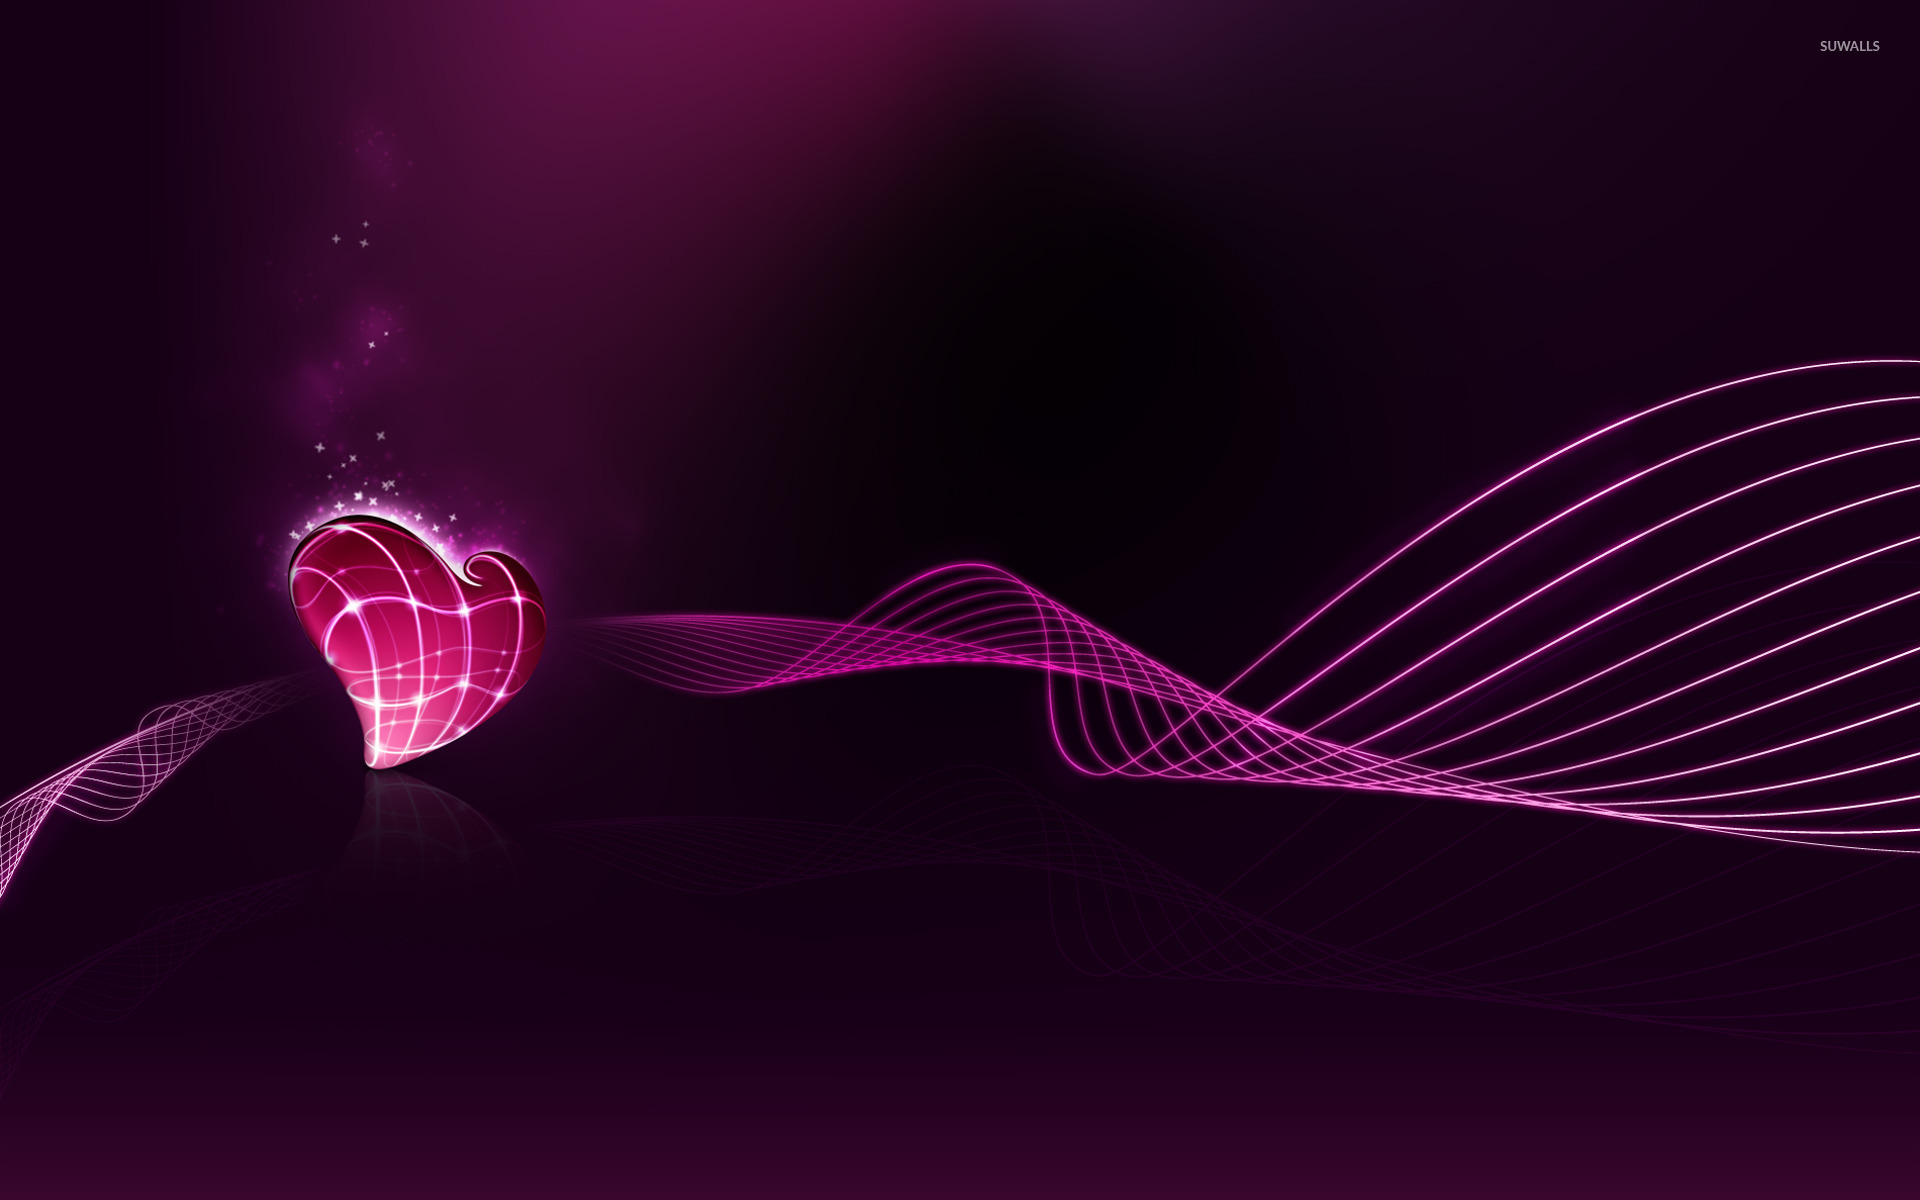 pink heart wallpaper - abstract wallpapers - #15683